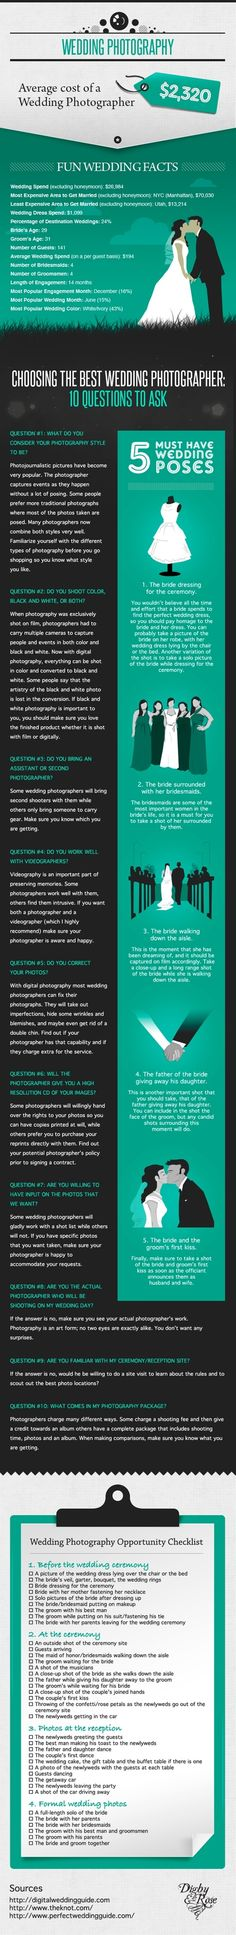 [INFOGRAPHIC] Complete Guide For Choosing a Wedding Photographer | Digby & Rose Invitations DC